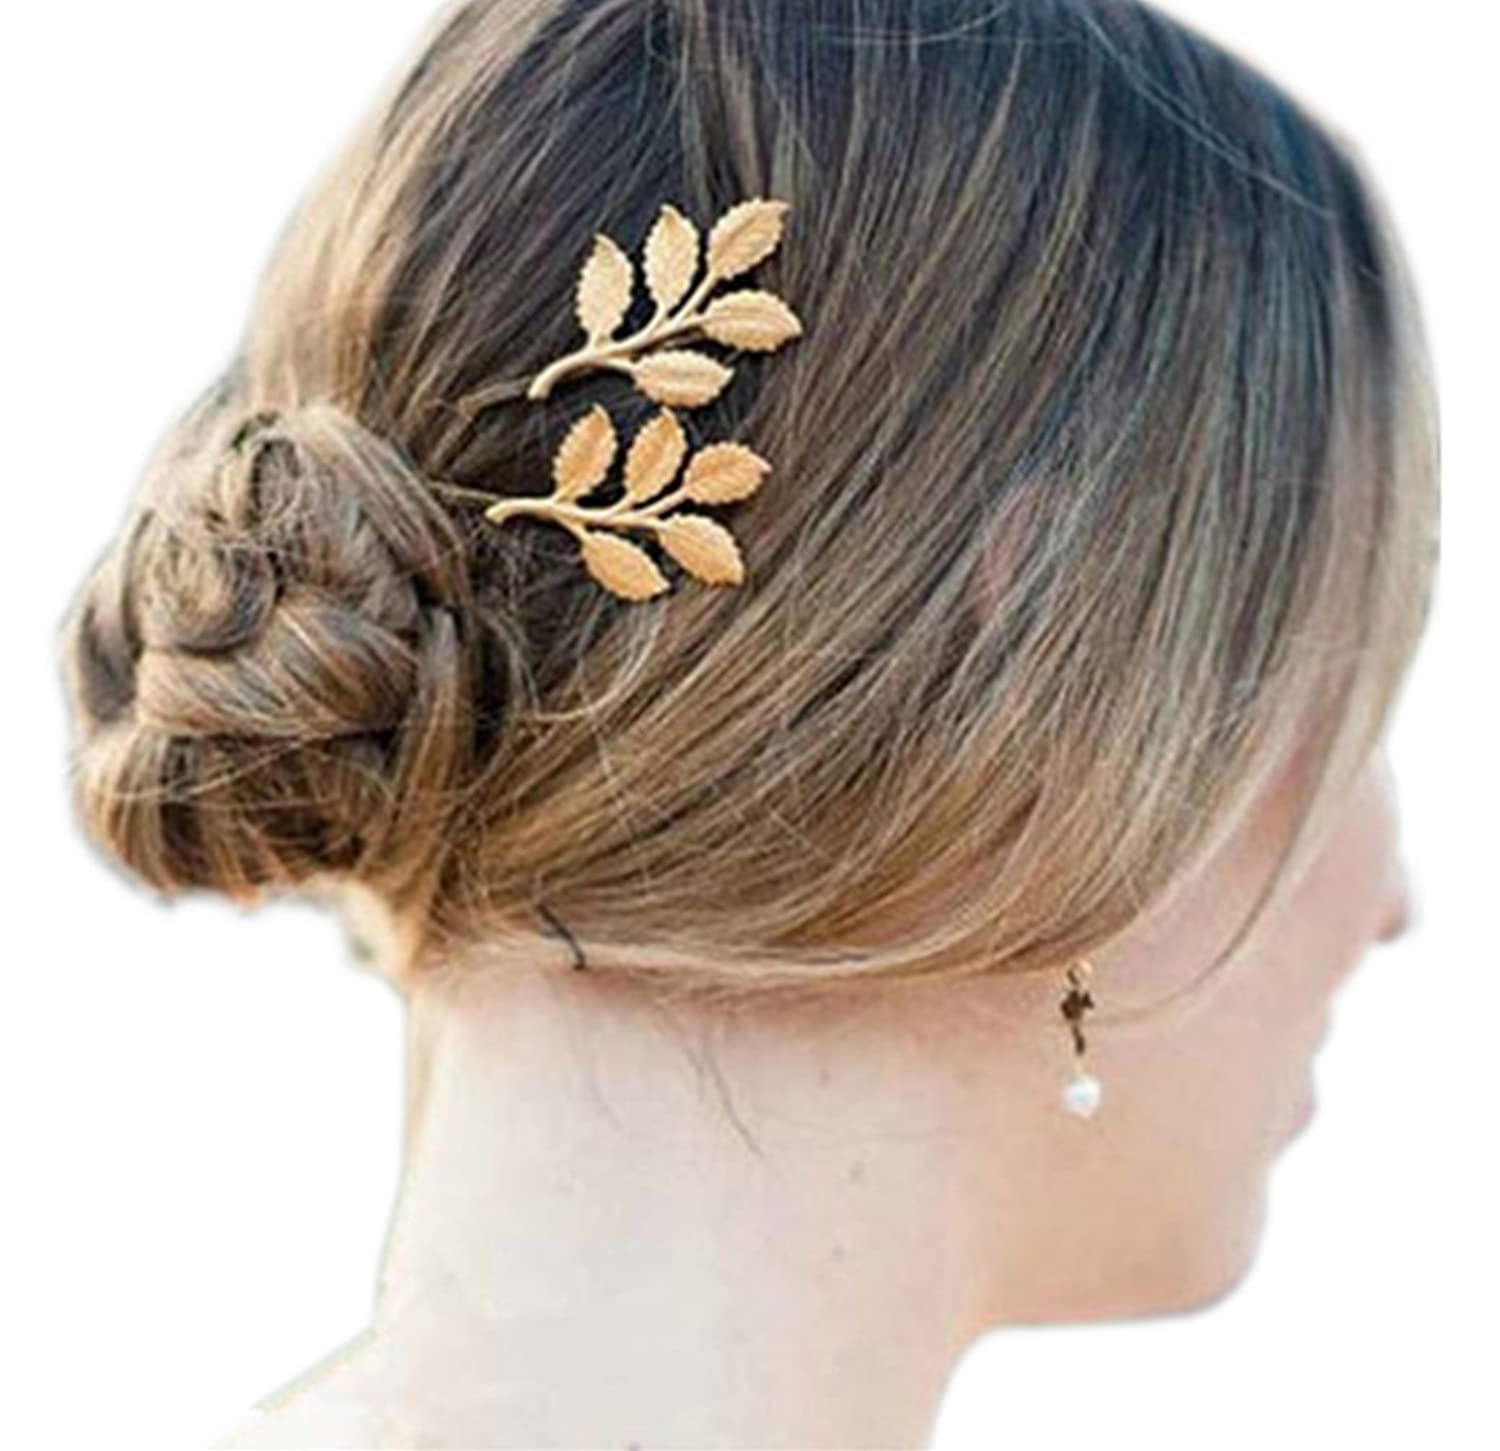 Deepon Antique Style Accessories Olive Leaves Leaf Barrette Alloy Hairpin  Hair Cip Nature Bridal 2 Pcs 4a1909b16417